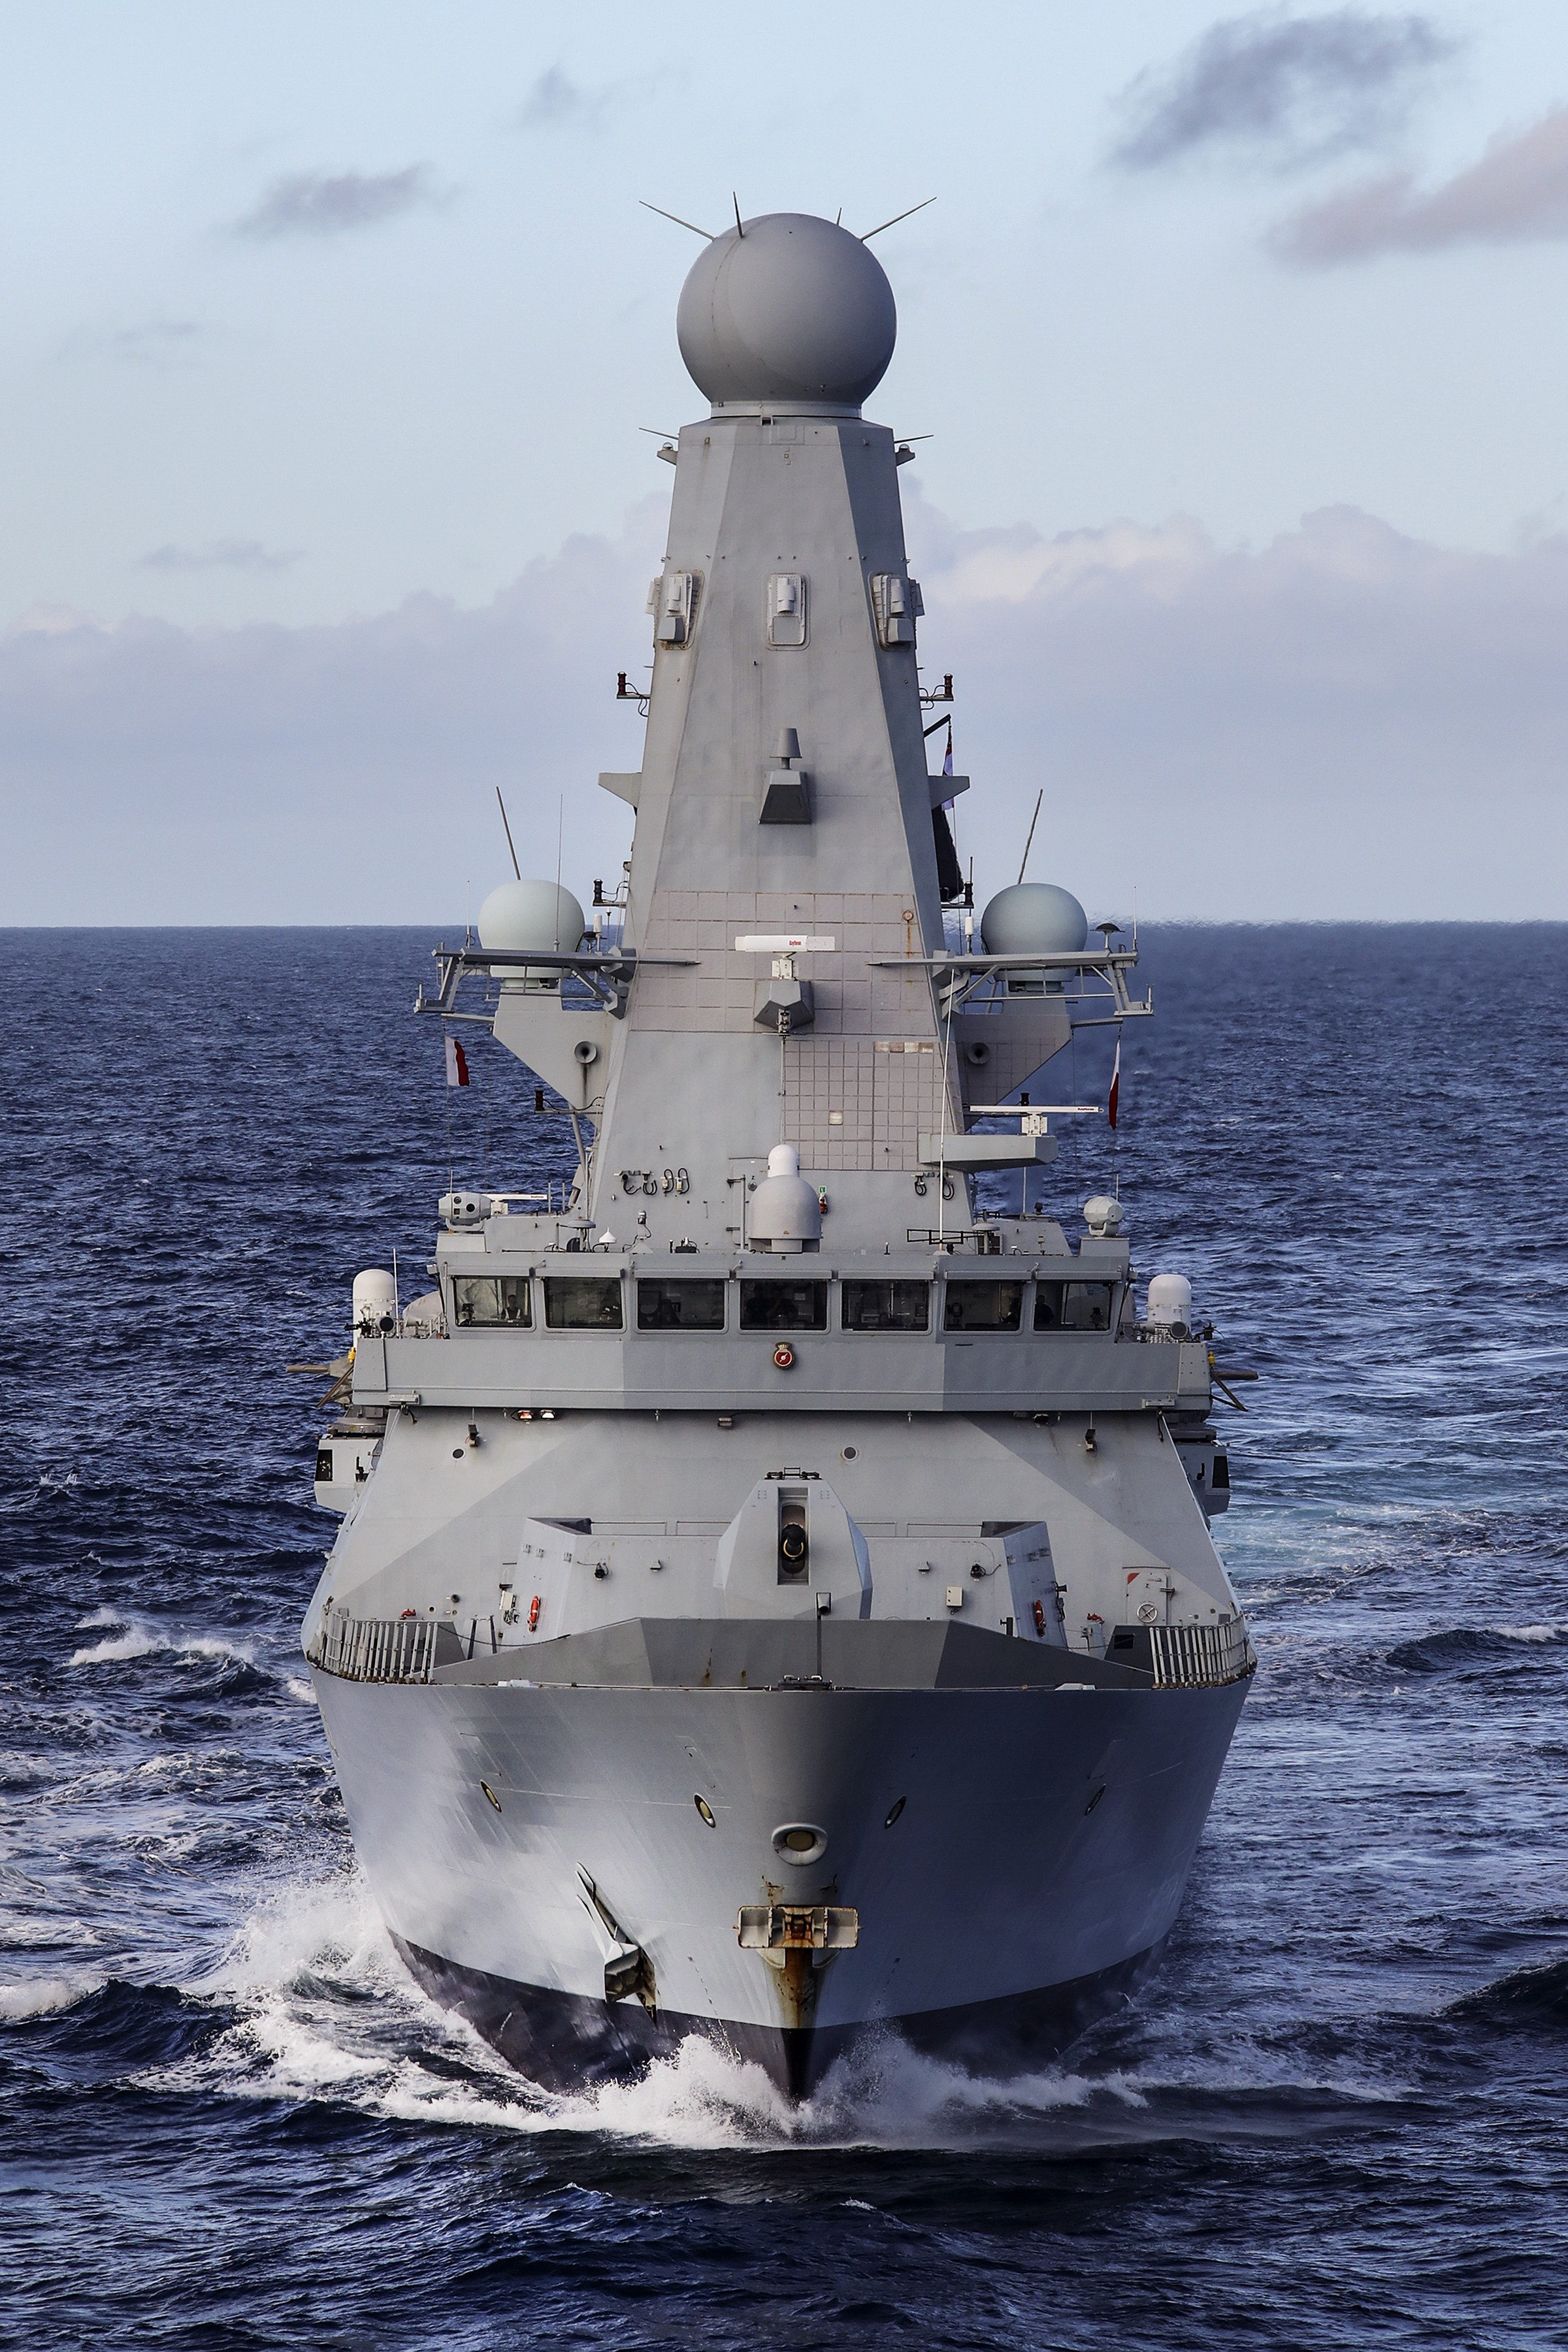 Image of HMS Defender in the sea, with the front of the ship facing the camera